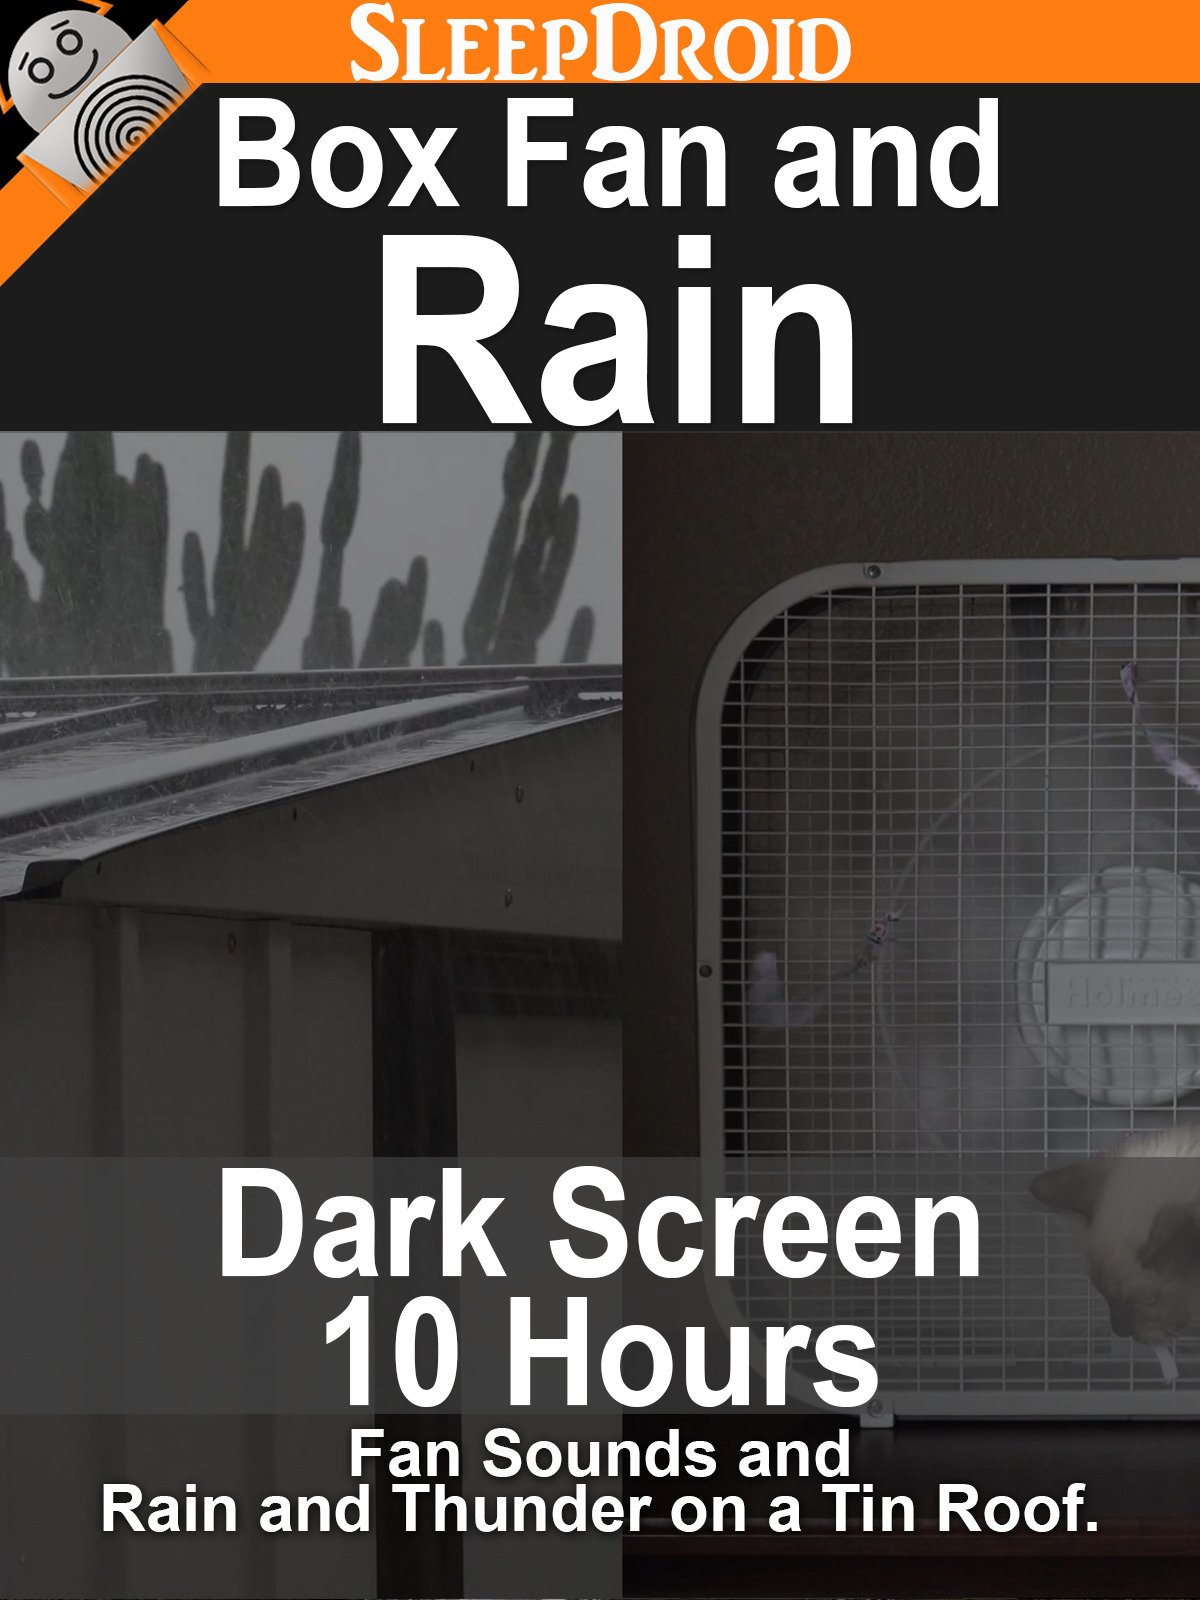 Box Fan and Rain: 10 hours of Dark Screen Fan Sounds and Rain and Thunder on a Tin Roof